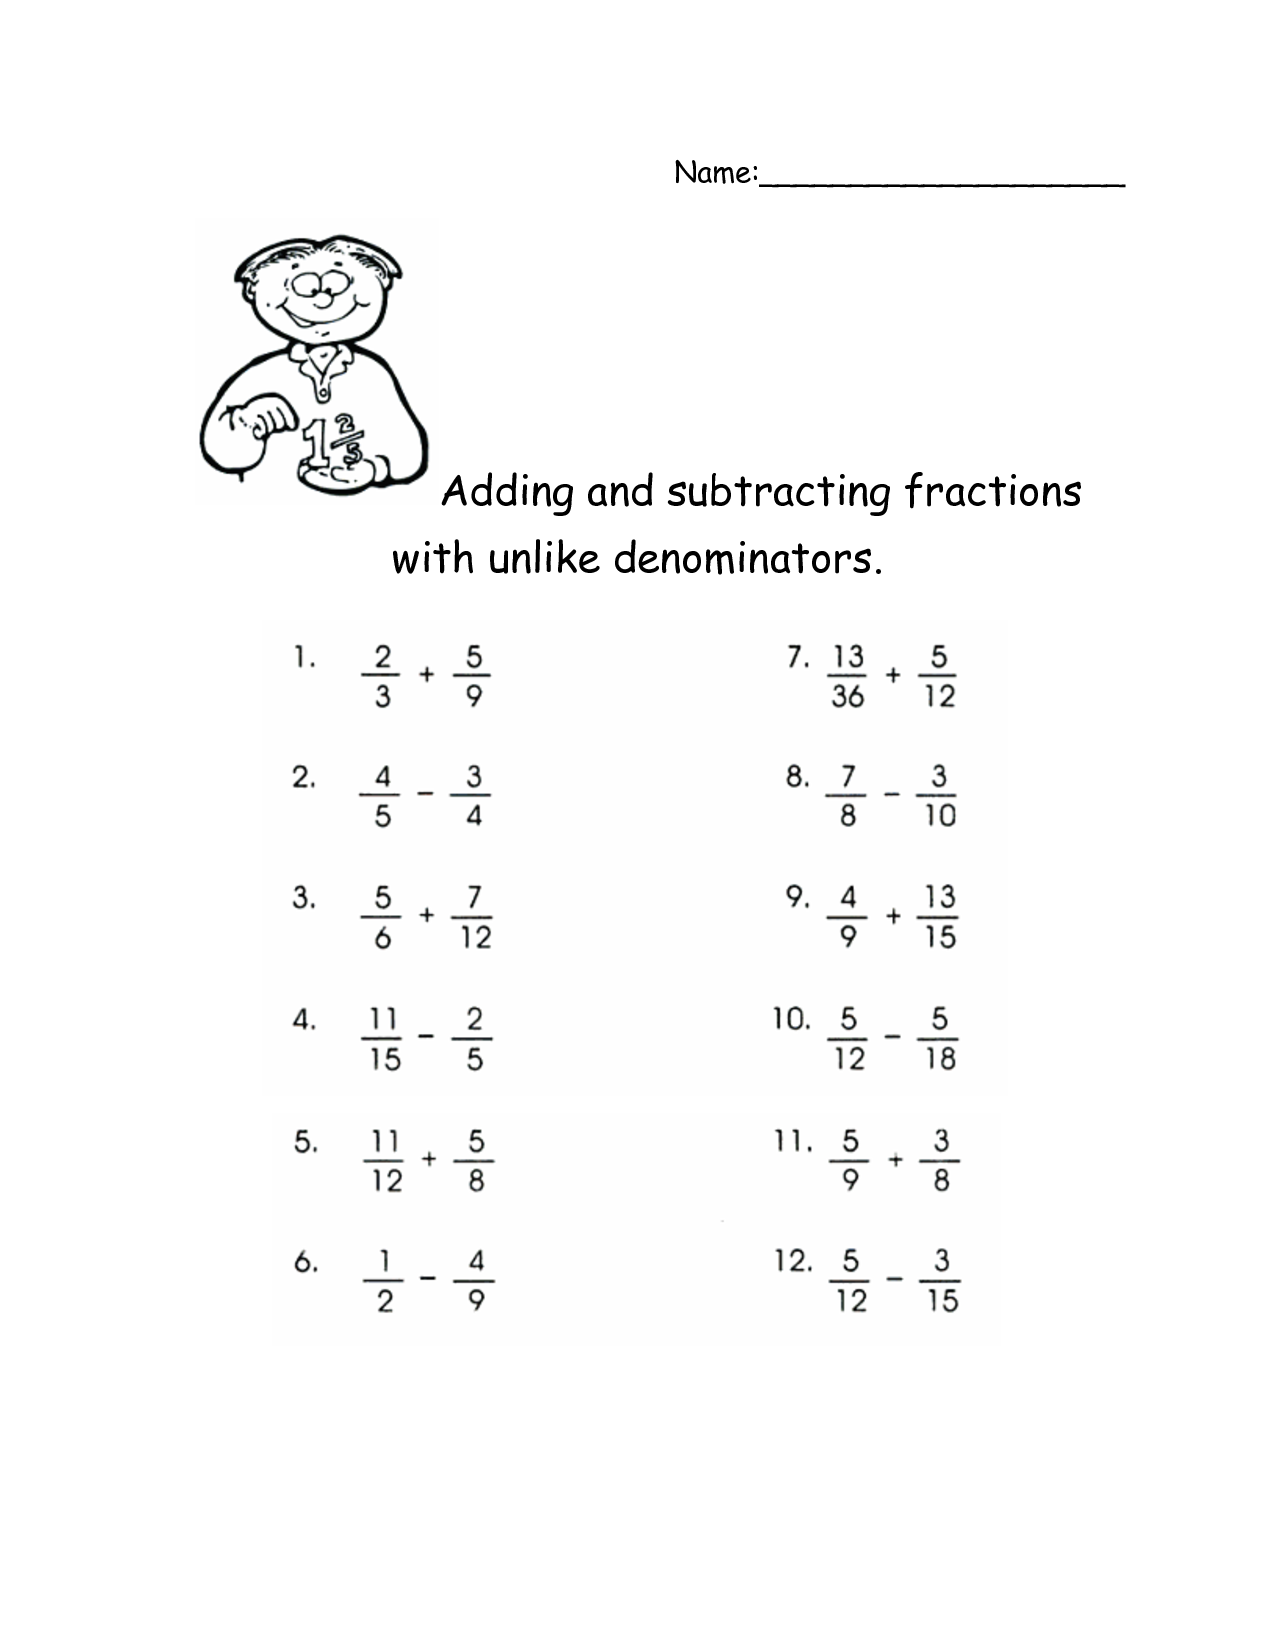 worksheet Addition And Subtraction Fractions Worksheets adding and subtracting fractions with unlike denominators activities